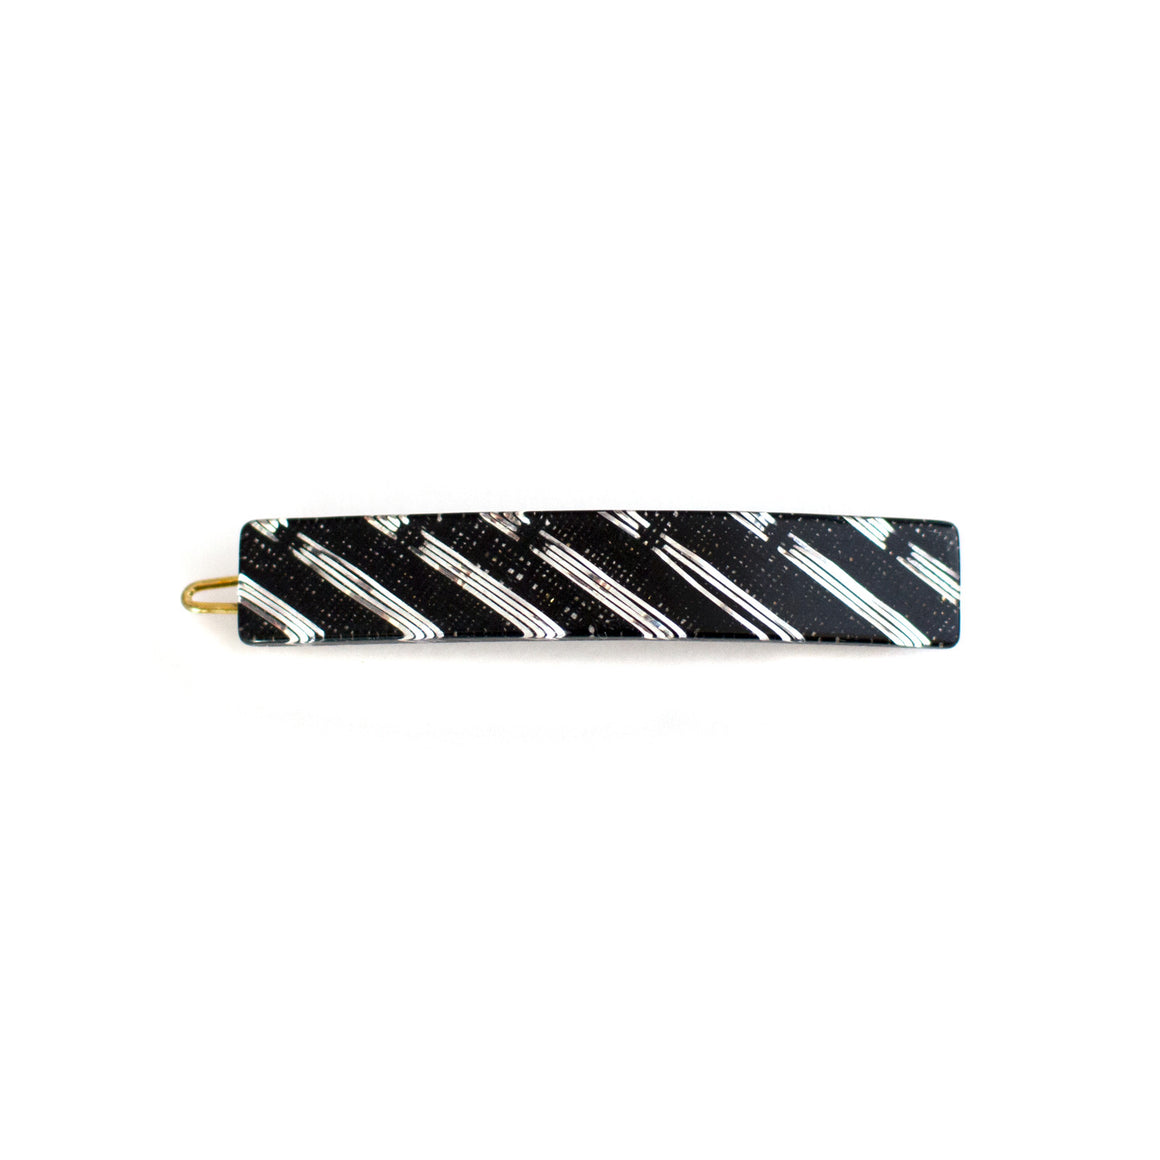 vintage black and silver 1960s hair barrette | hair clip curated by mane message